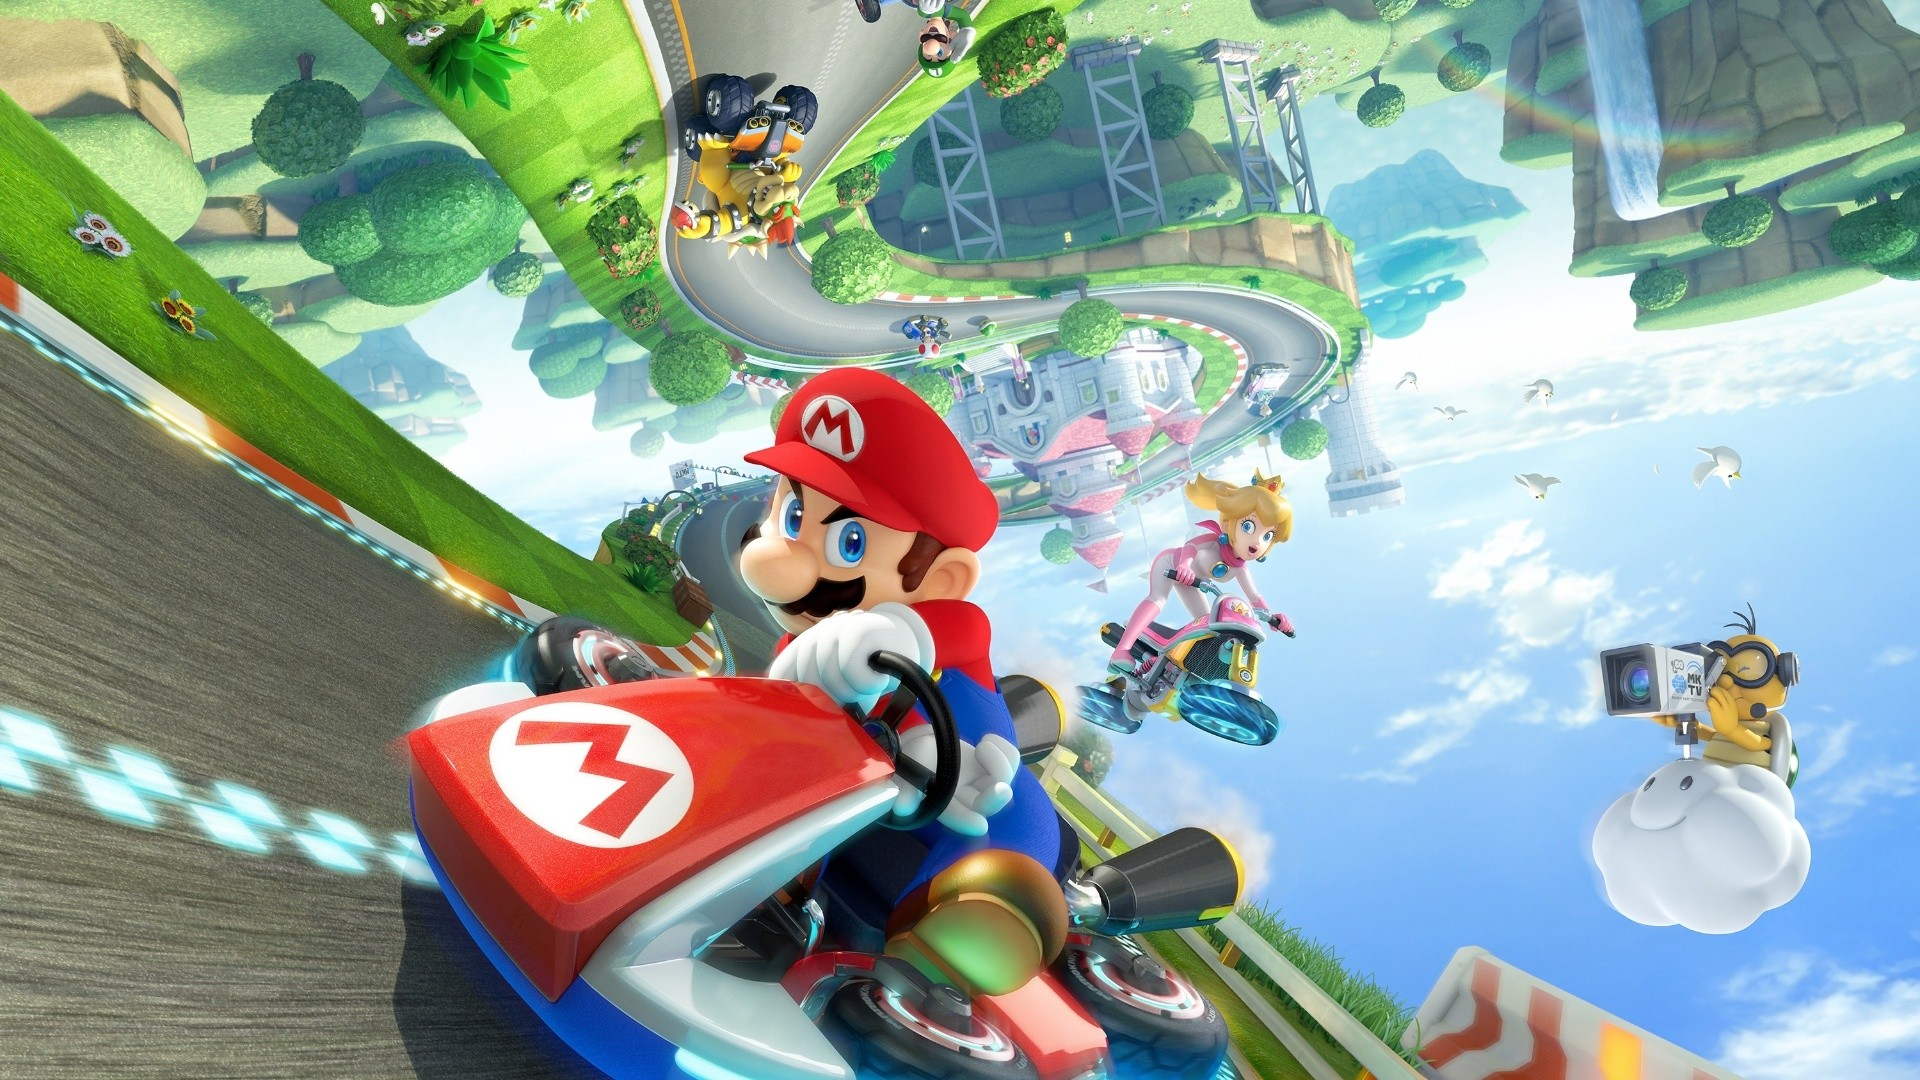 1920x1080 Mario Kart 8 Computer Wallpapers, Desktop Backgrounds .